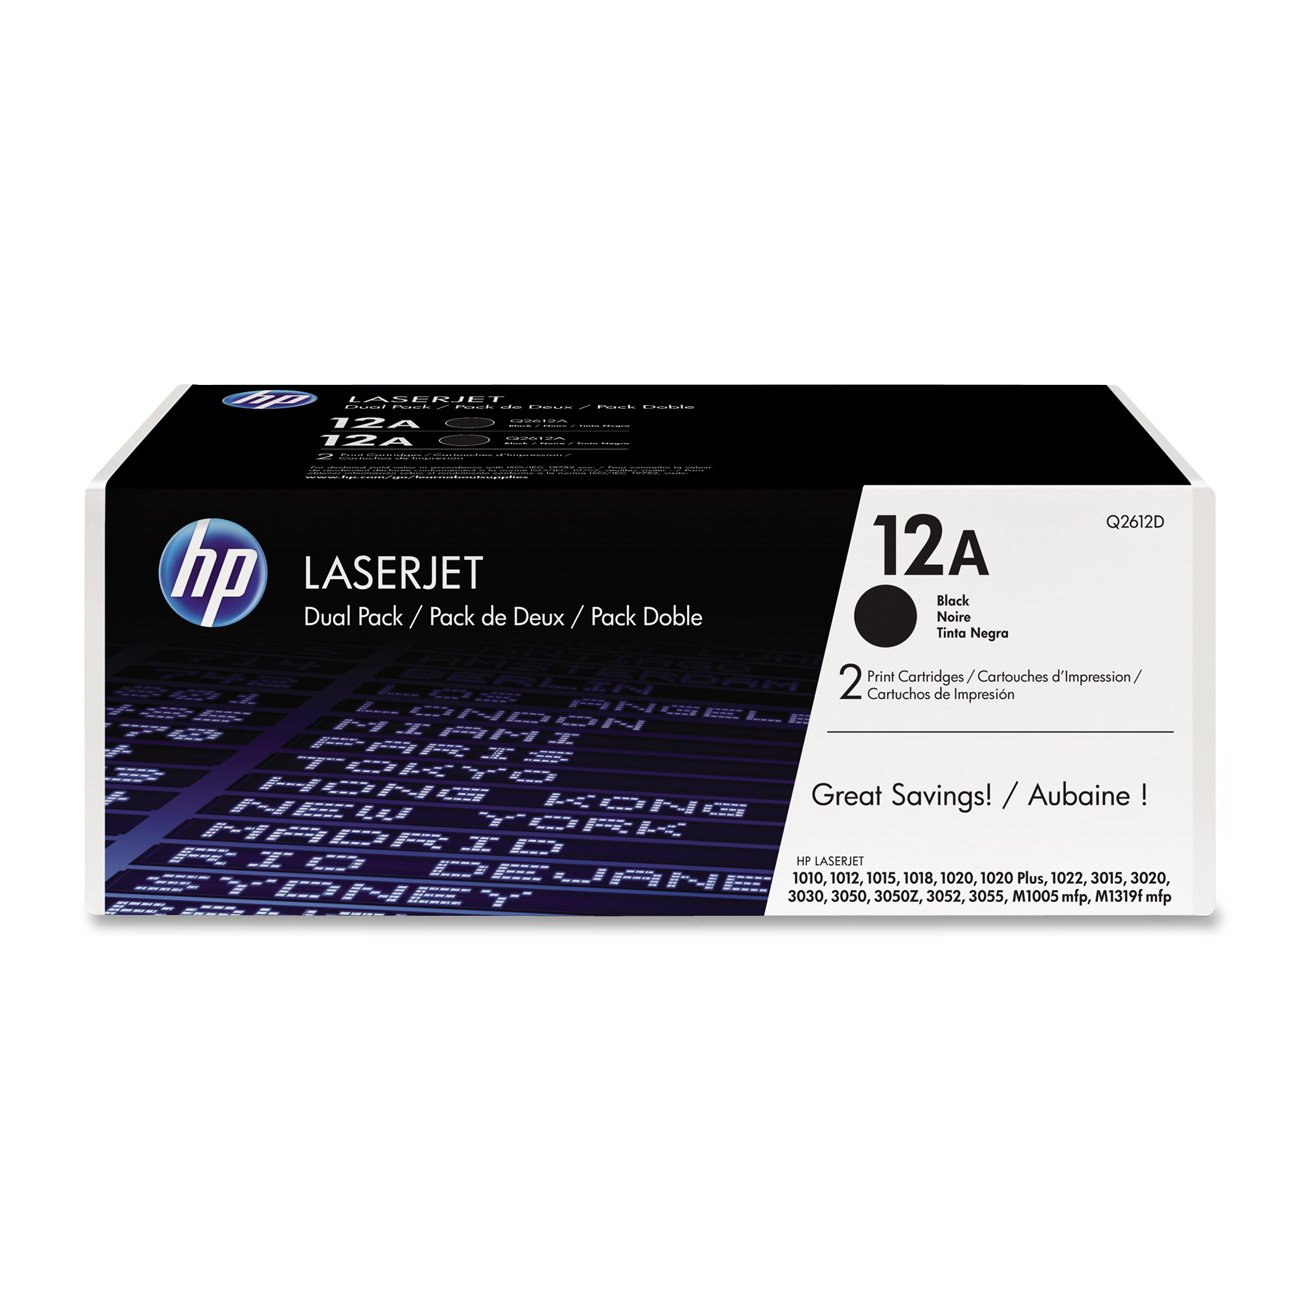 HP 12A (Q2612A) Black Toner Cartridge, 2 Toner Cartridges (Q2612D)